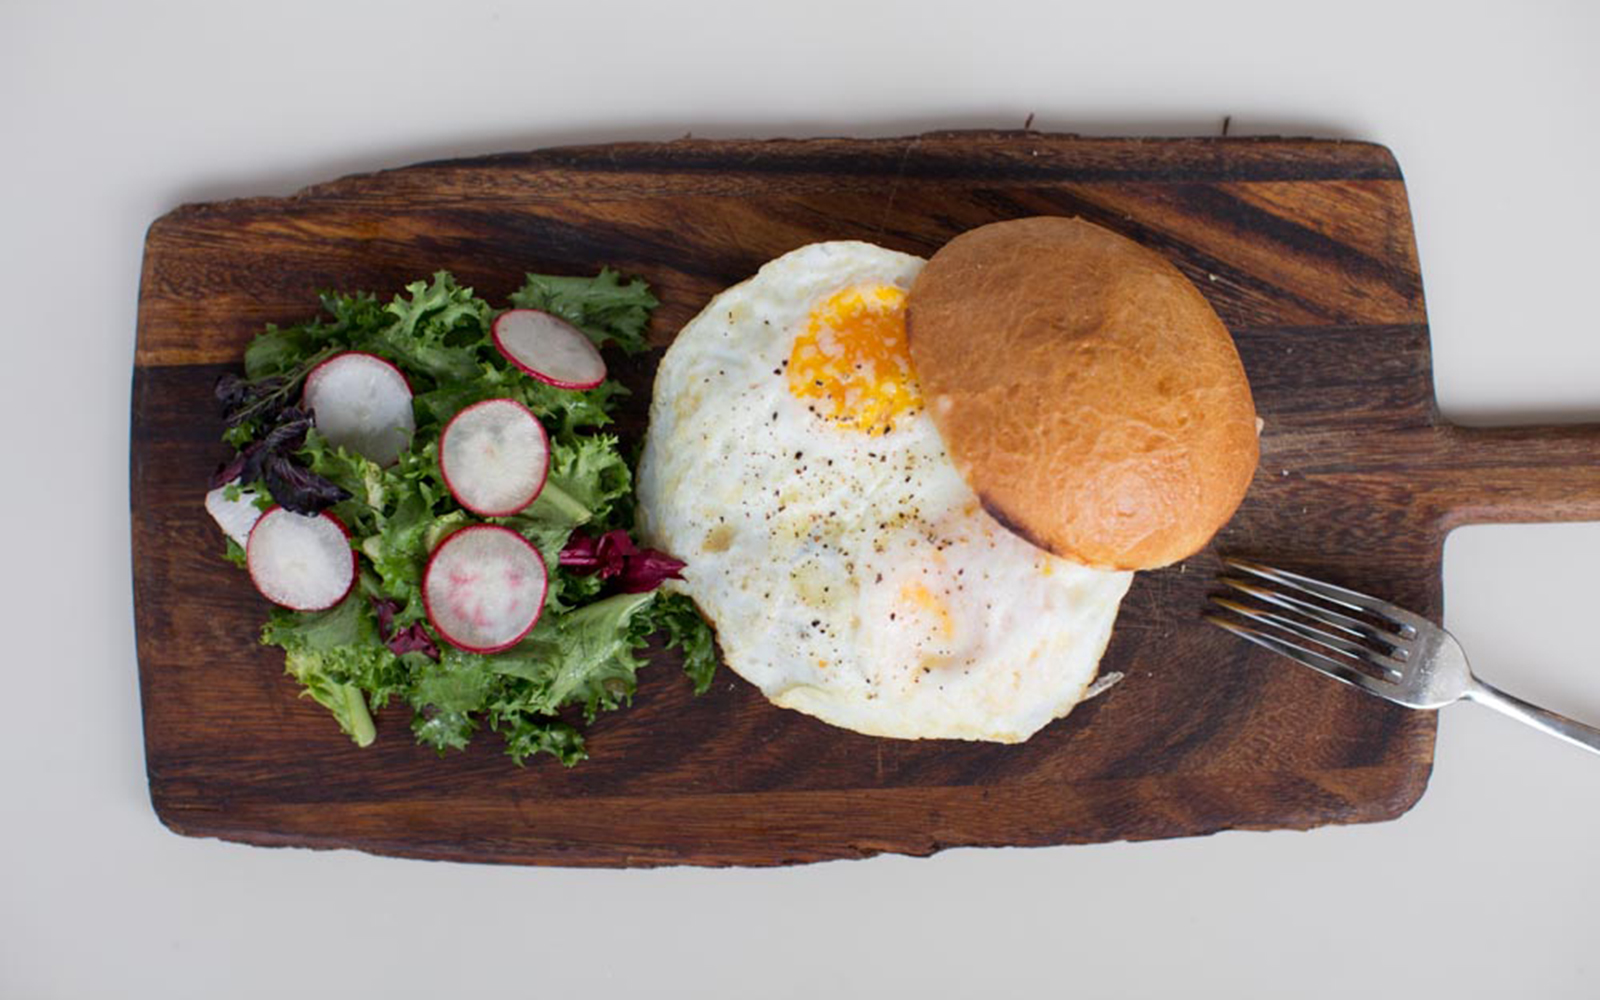 Best Brunch Spots in NYC: Cookshop